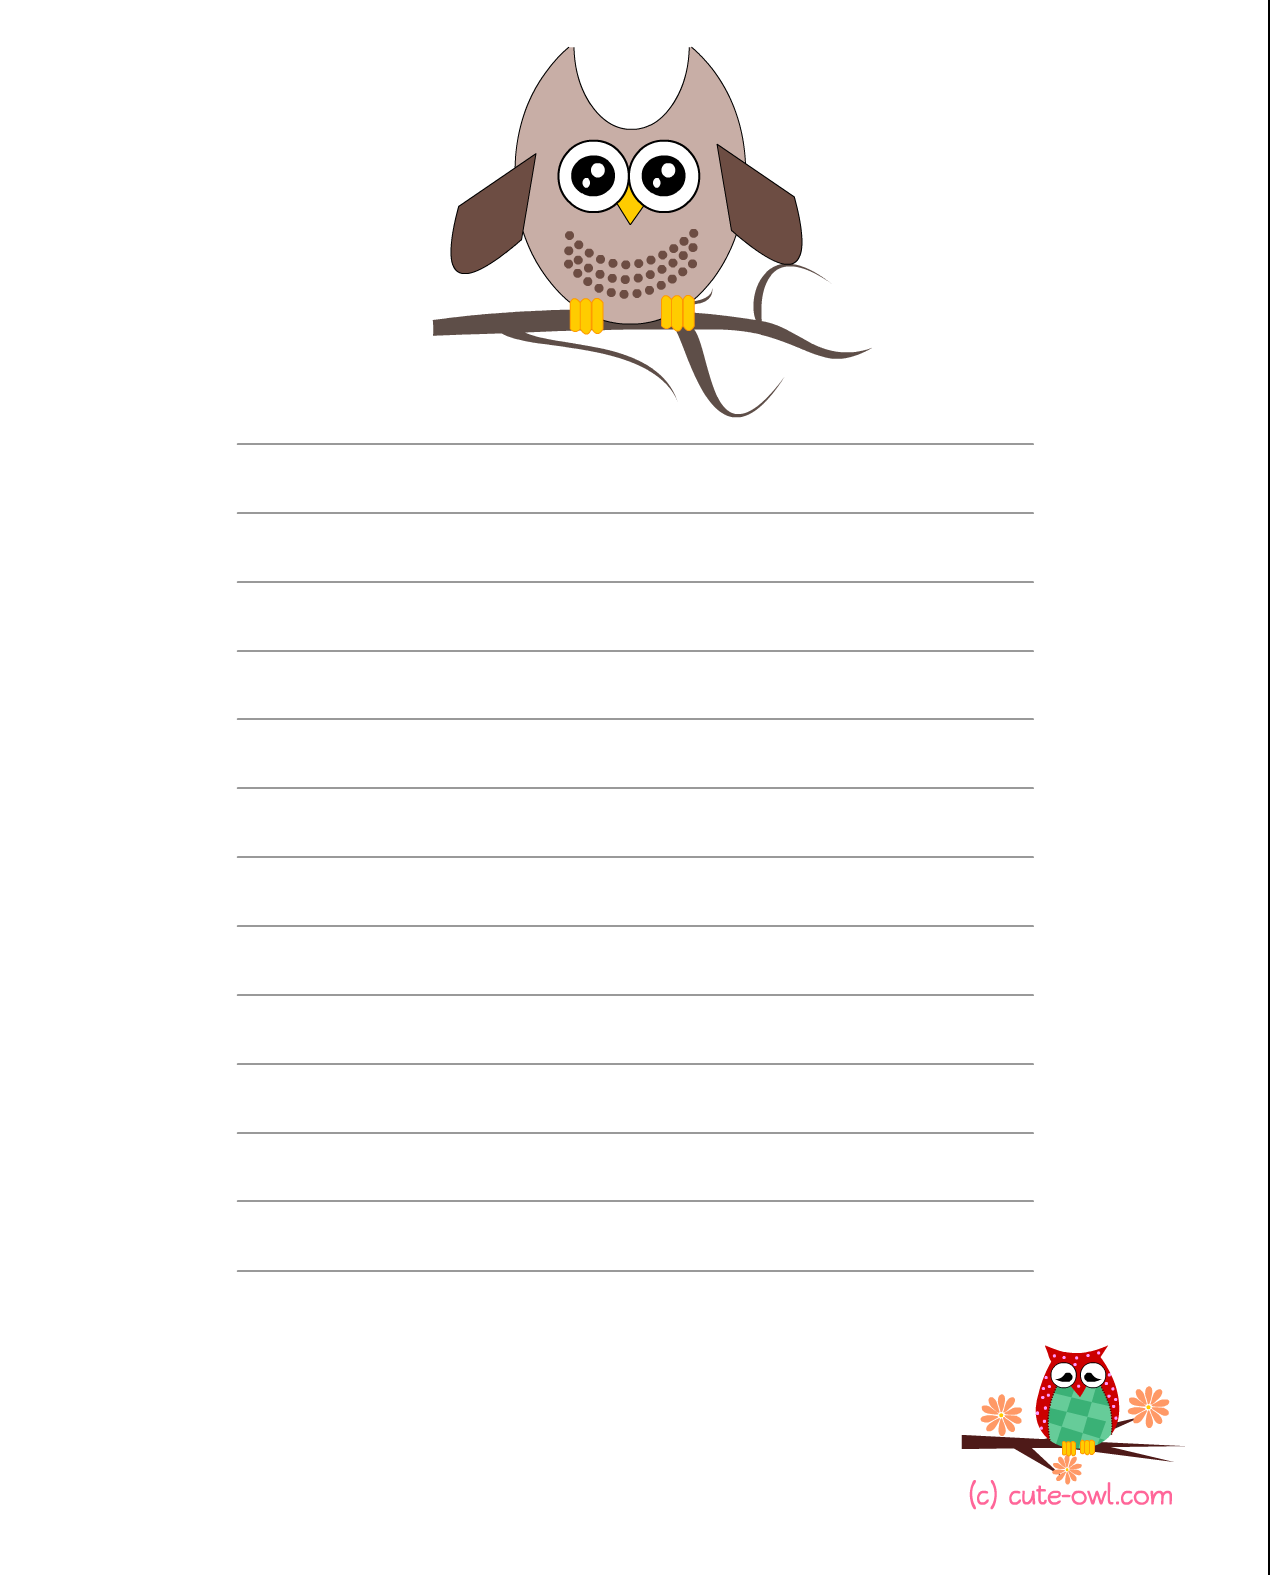 6 Images of Free Printable Owl Baby Shower Games